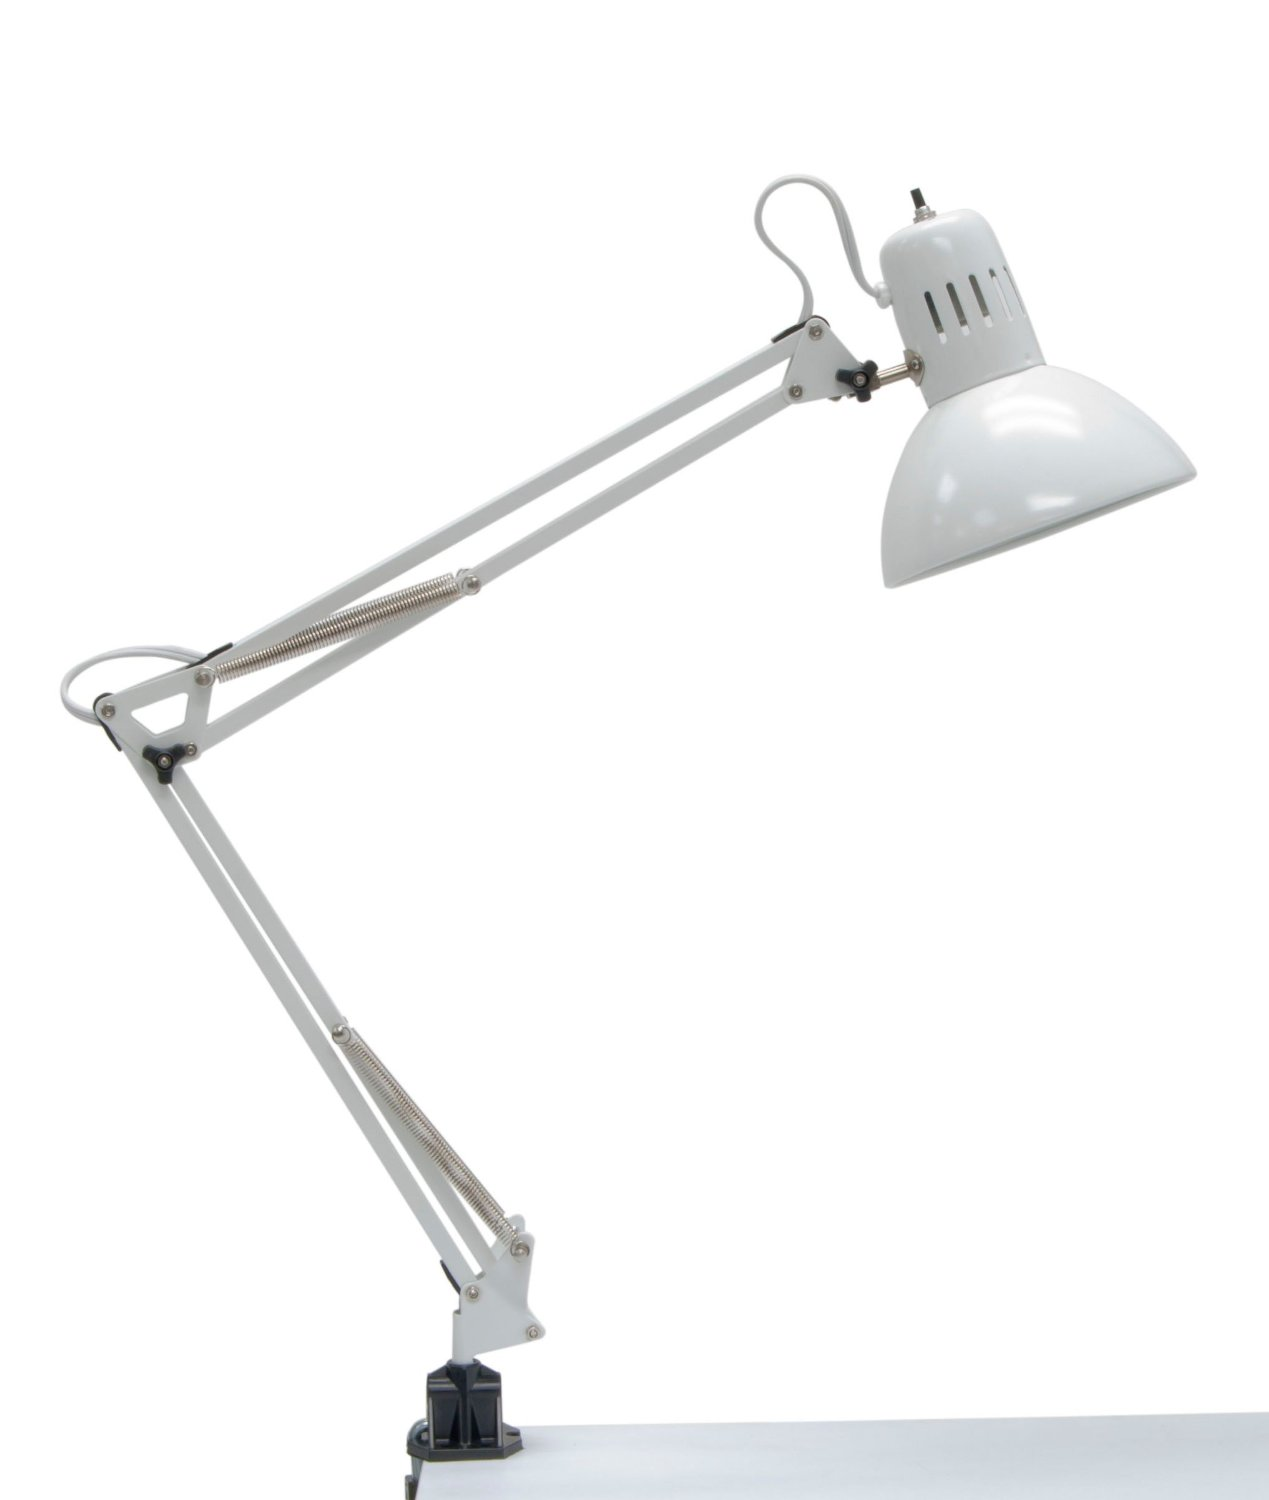 12024 Swing Arm Lamp, 13-watt, White Bulb Type_Swing Arm Lamp_with 13 Watt CFL Bulb, Ship from USA,Brand Studio... by